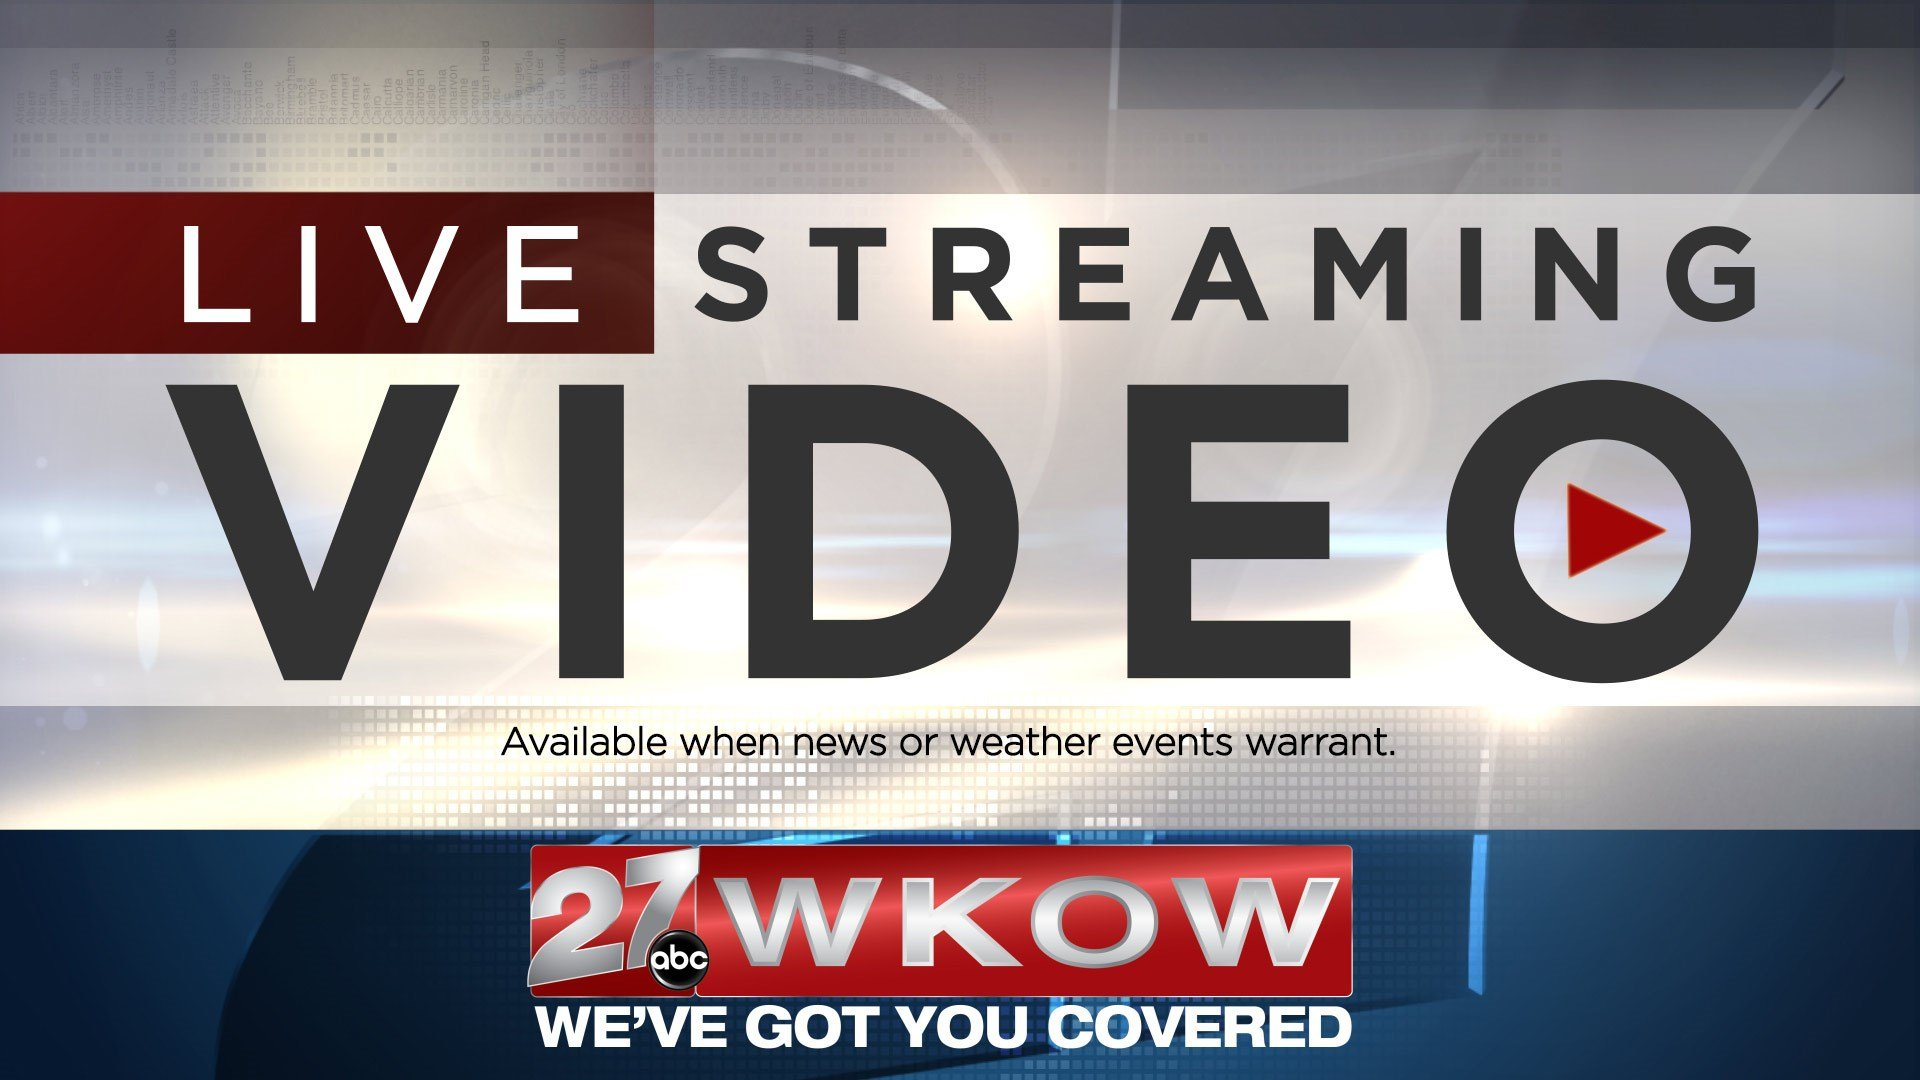 Live streaming video wkow 27 madison wi breaking news weather live streaming video wkow 27 madison wi breaking news weather and sports stopboris Image collections